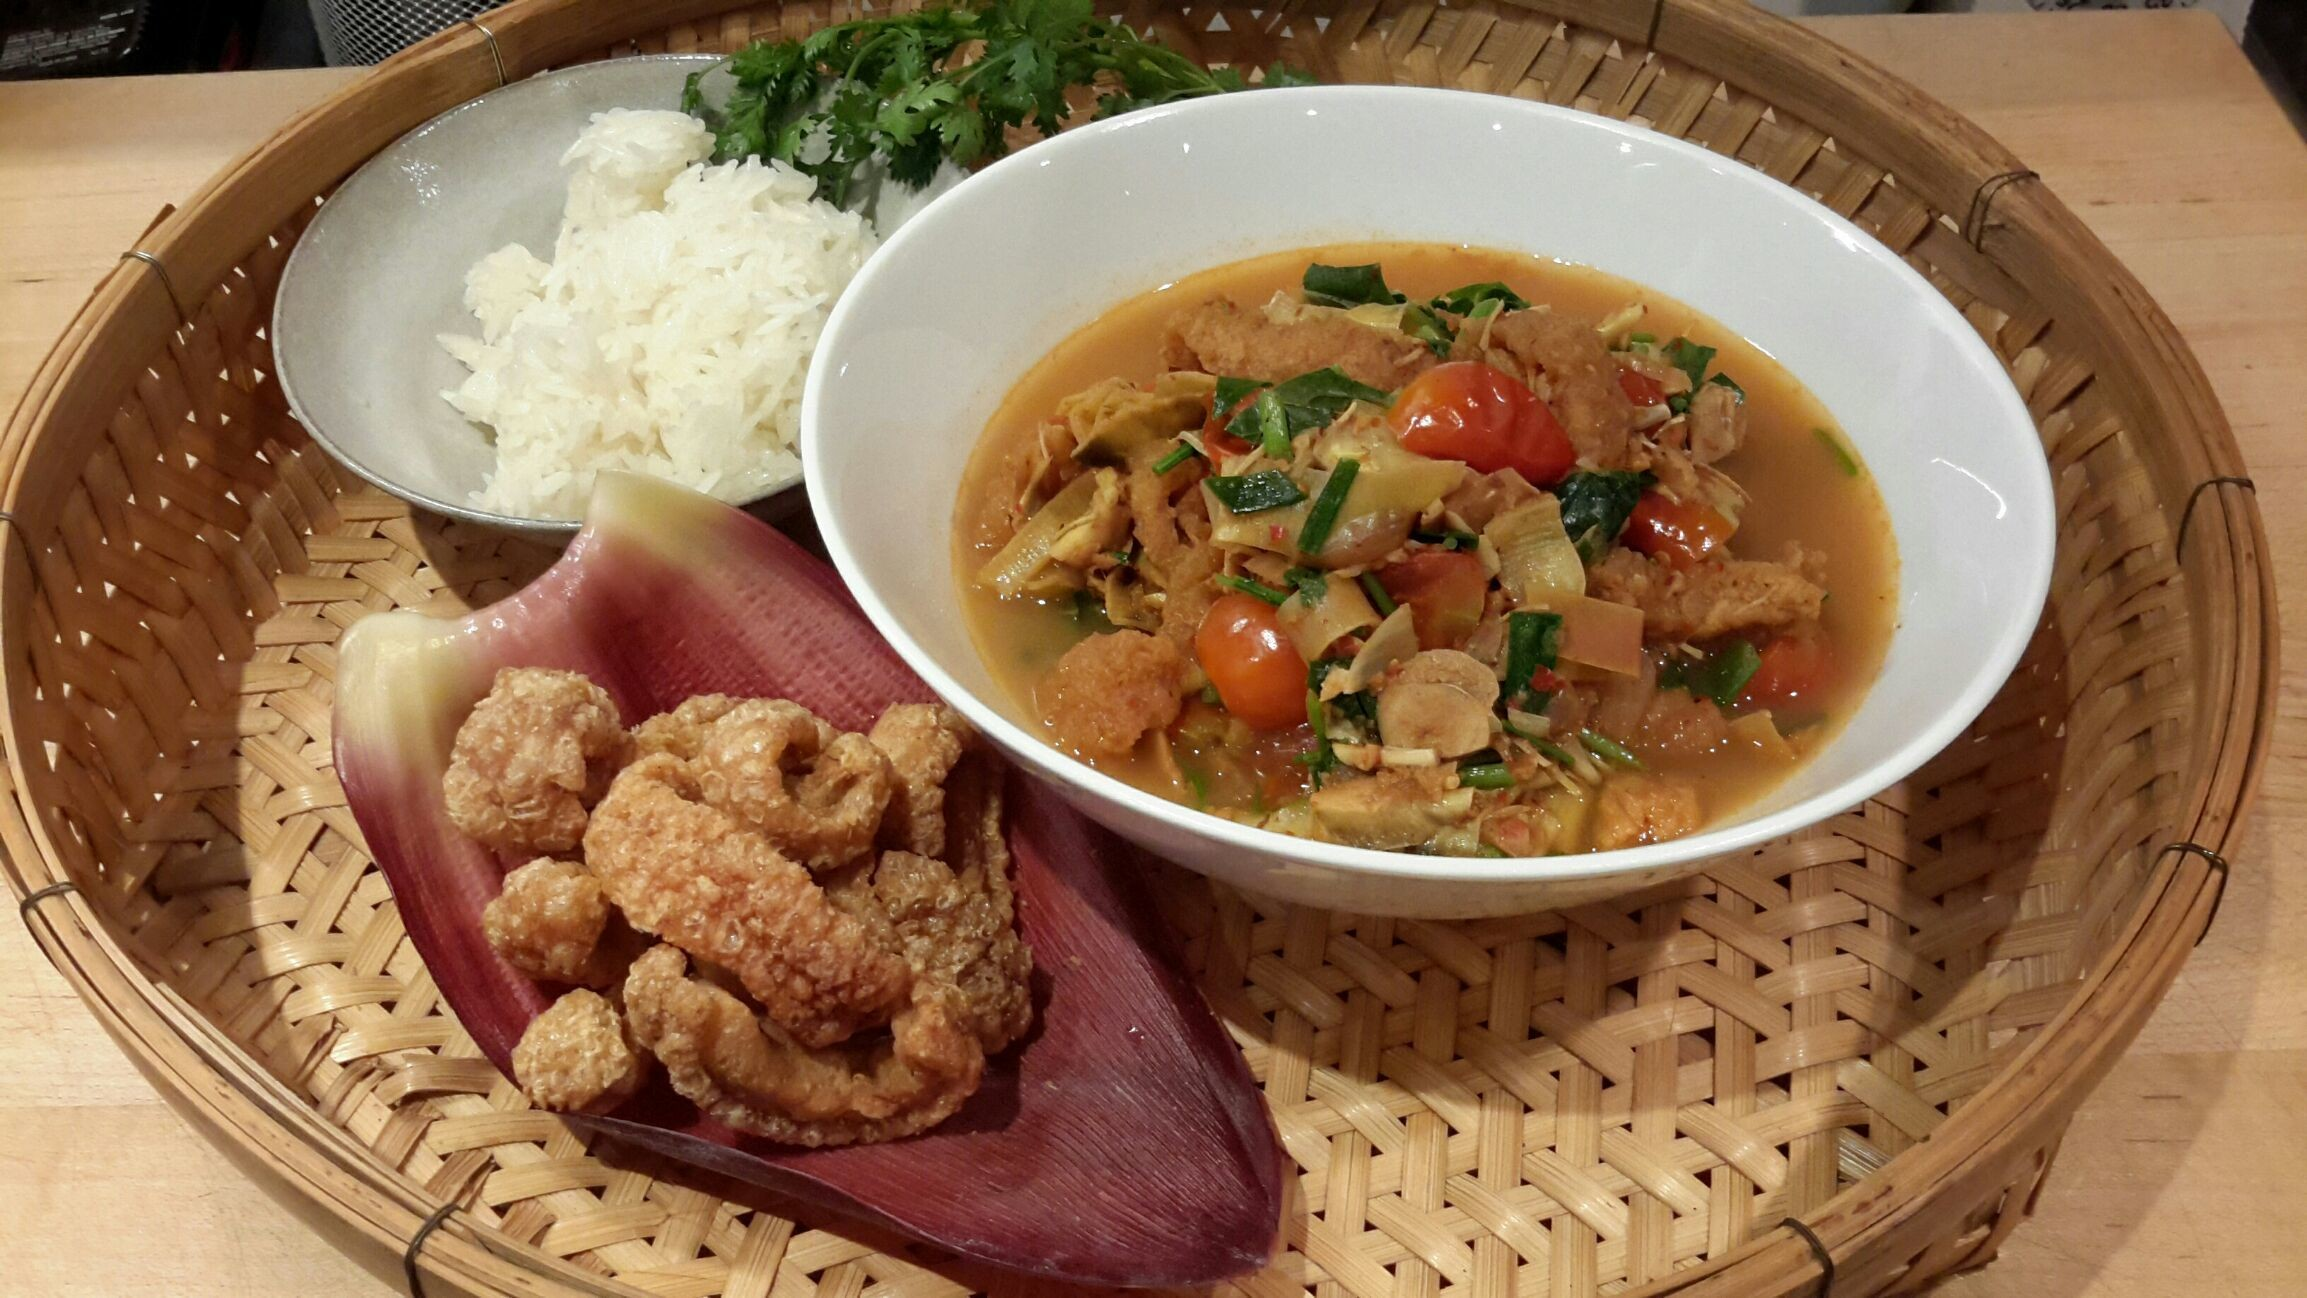 How about banana blossome curry ,it's so good :) แกงหัวปลีใส่แคบหมู ของกิ๋นเมืองๆ